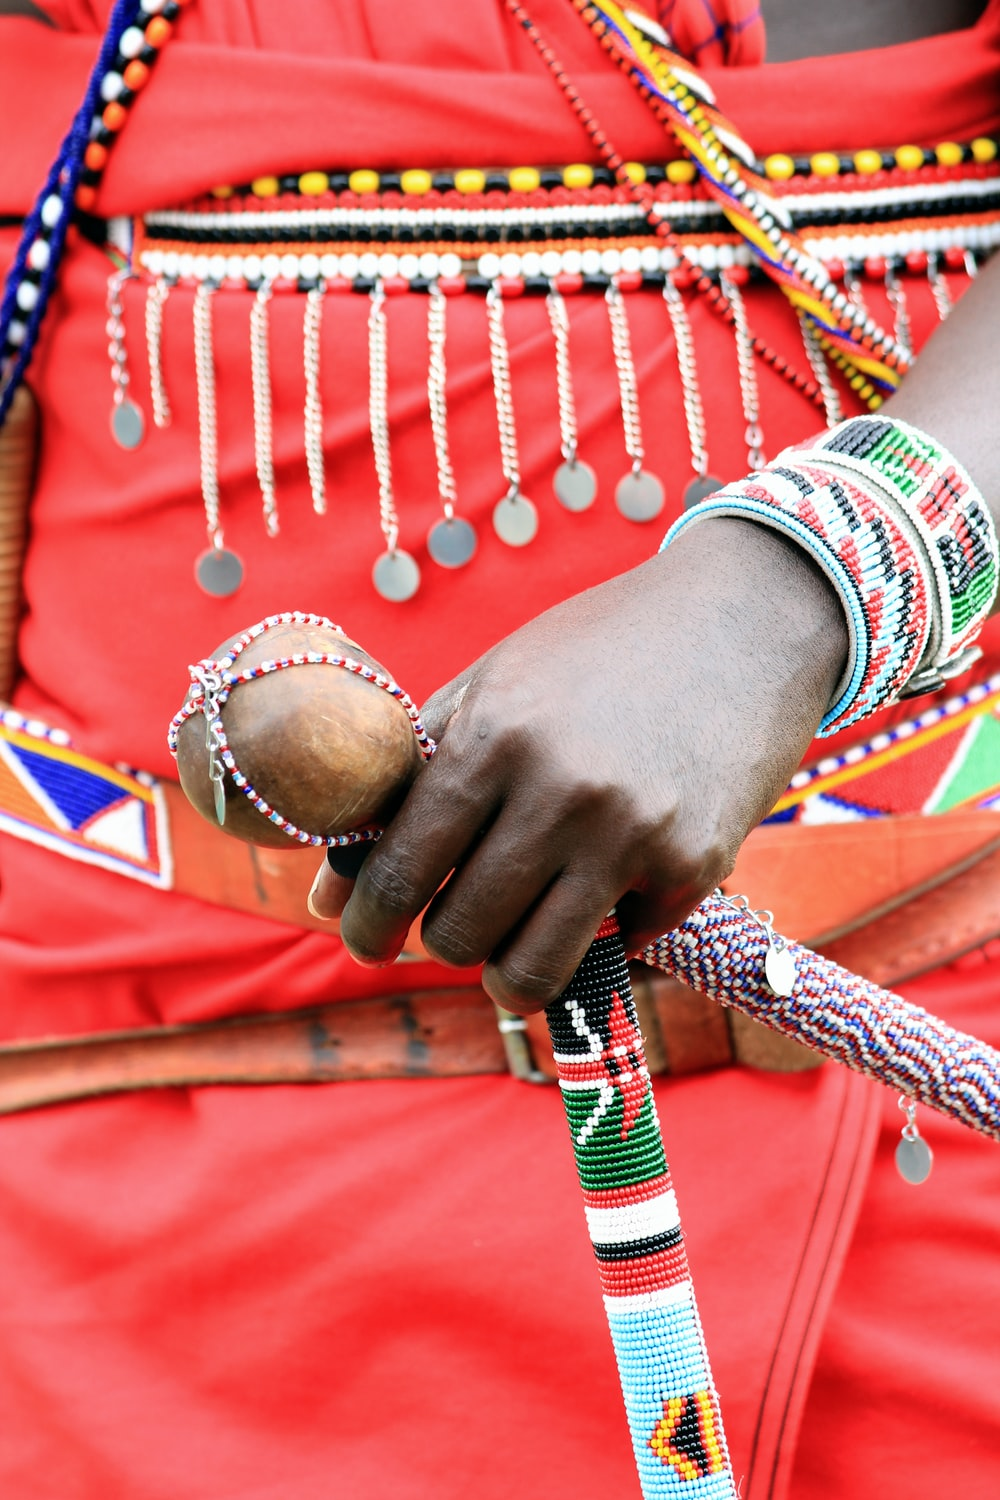 person wearing red white and blue bracelets